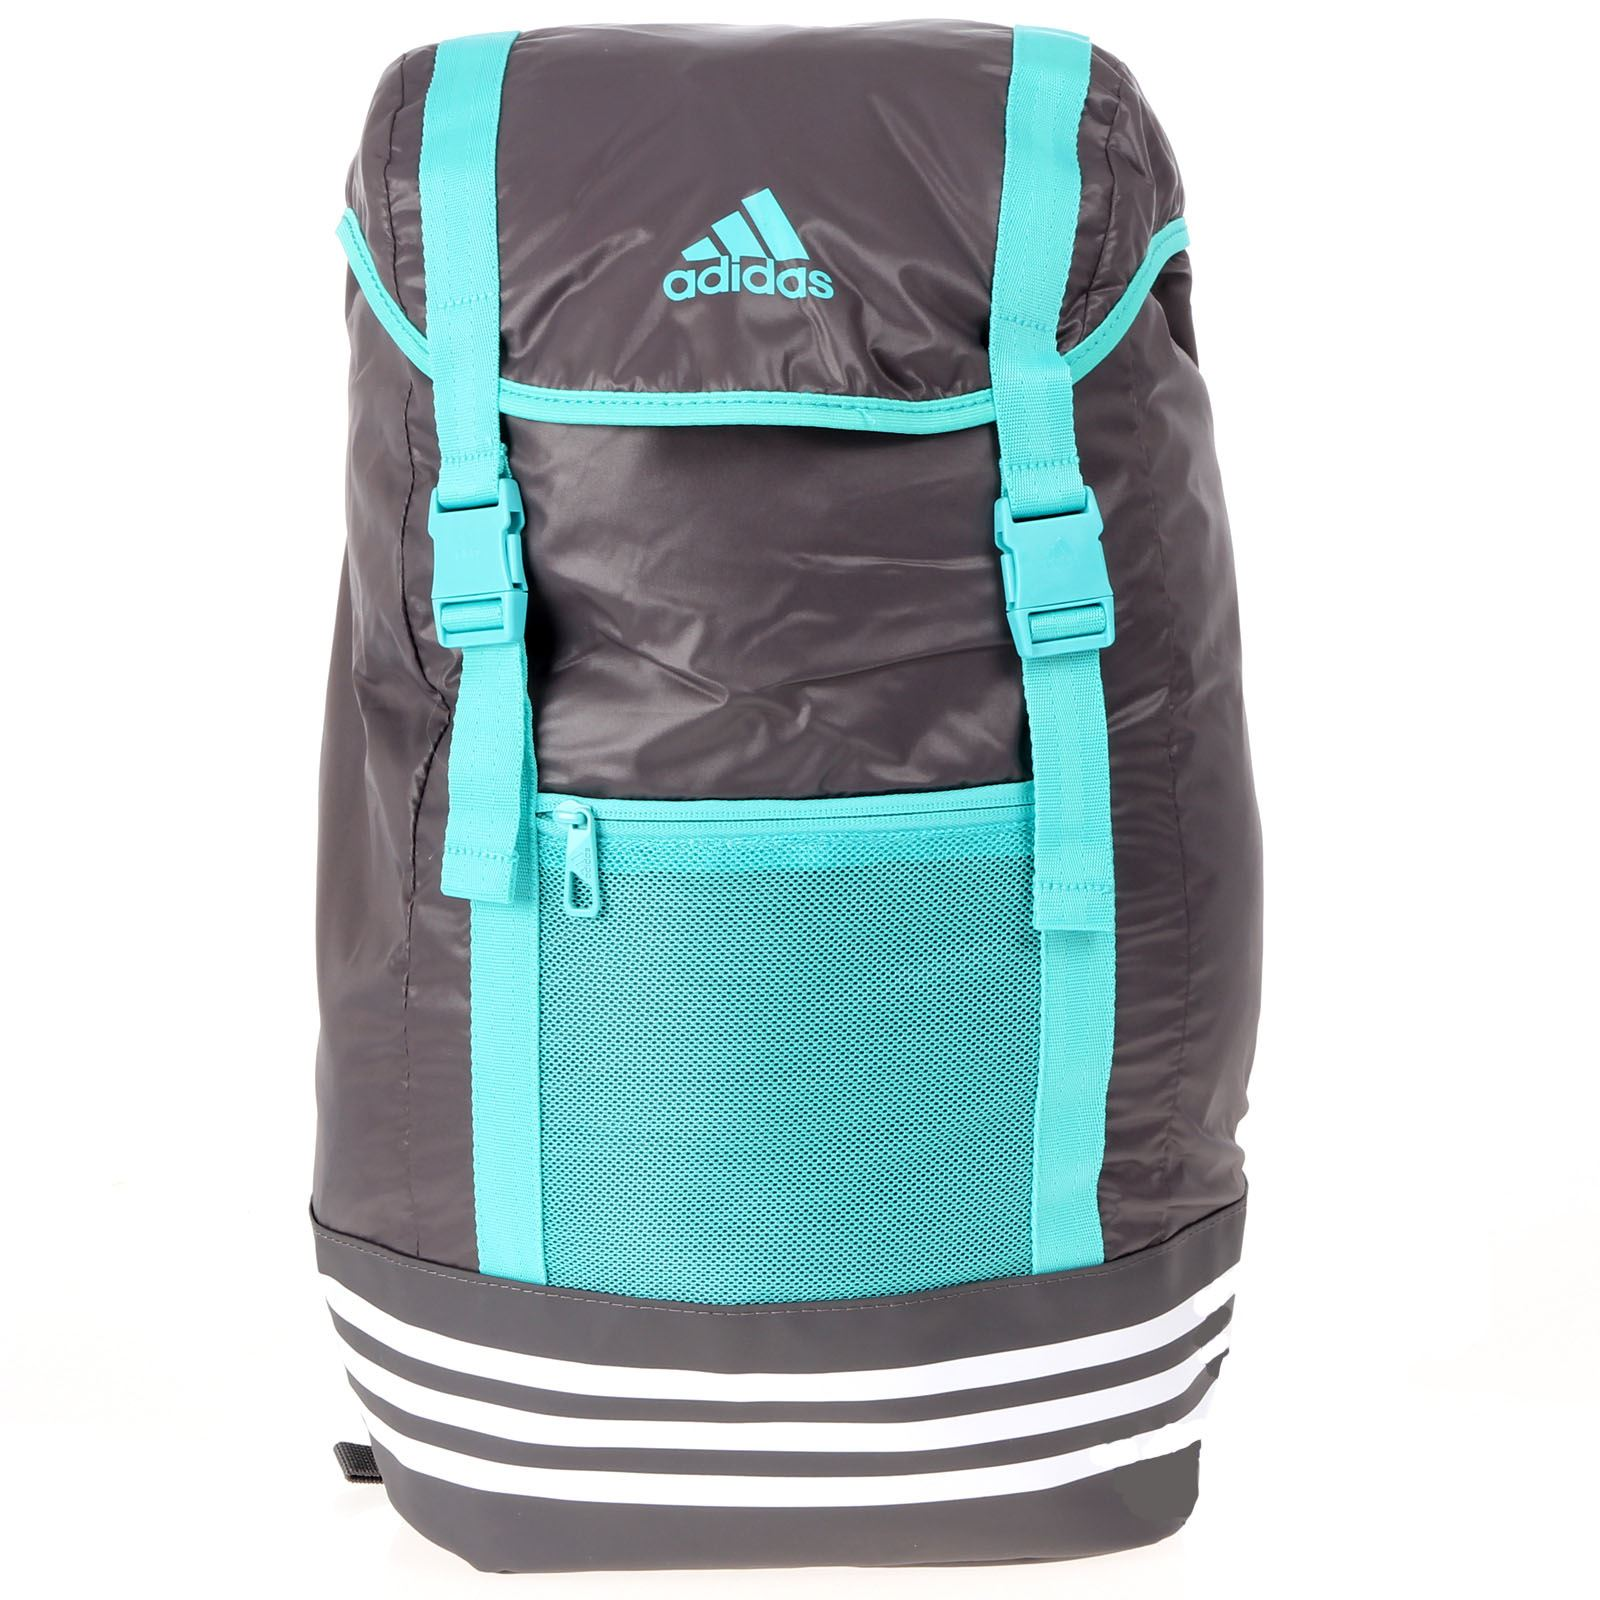 ... adidas Climacool Active Life G Backpack Grey Green Bag BP Rucksack  Holdall 9ce1920f2a0